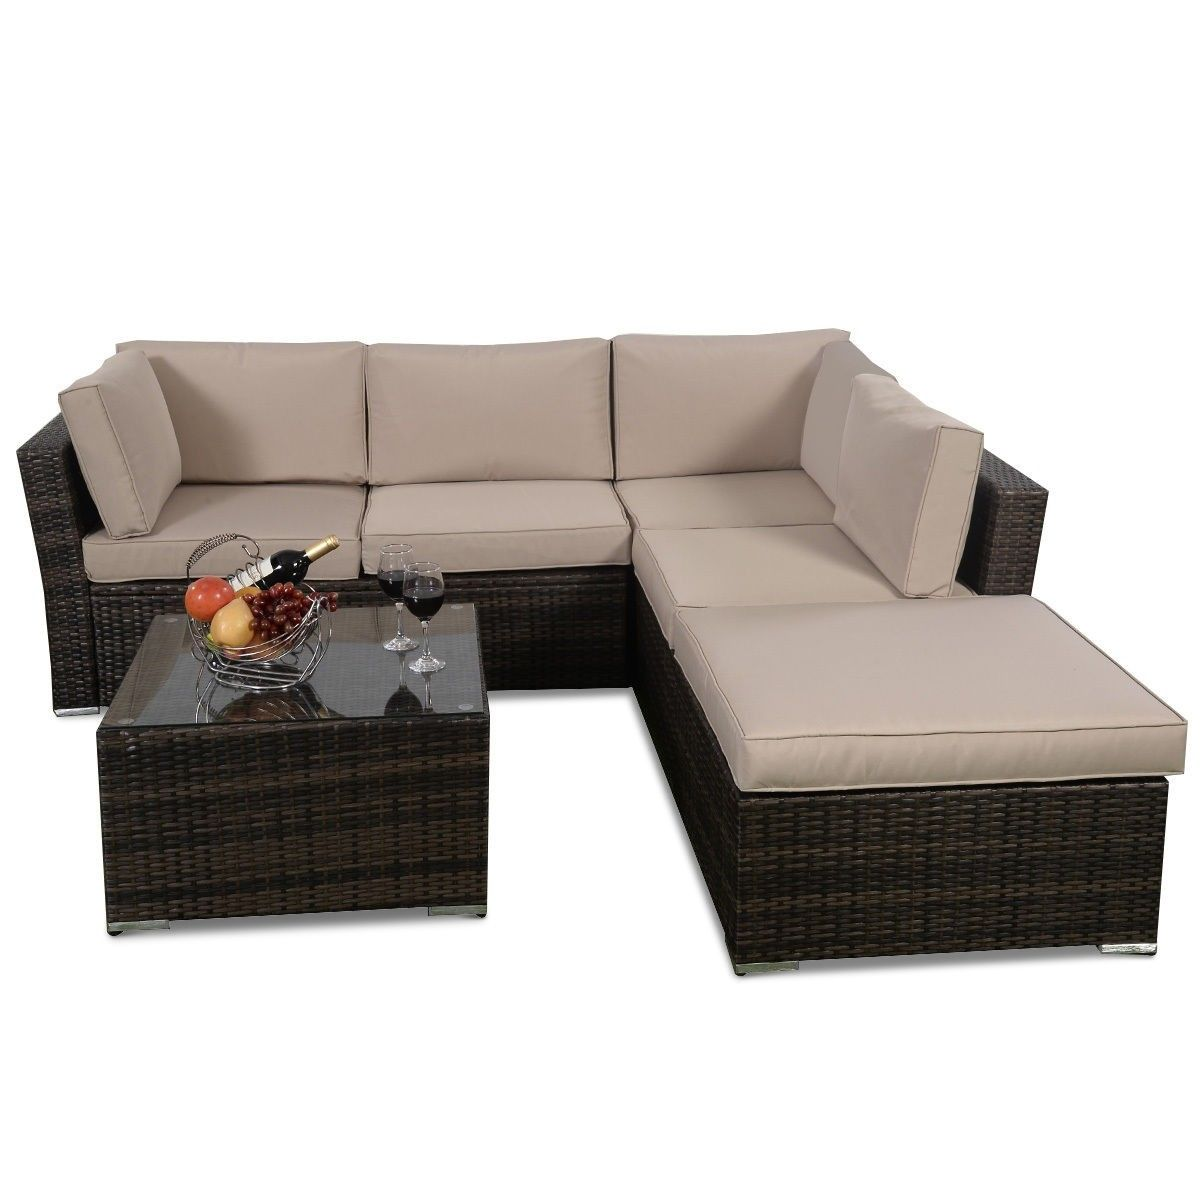 pcs Wicker Cushioned Seat Sofa Furniture Set in For the